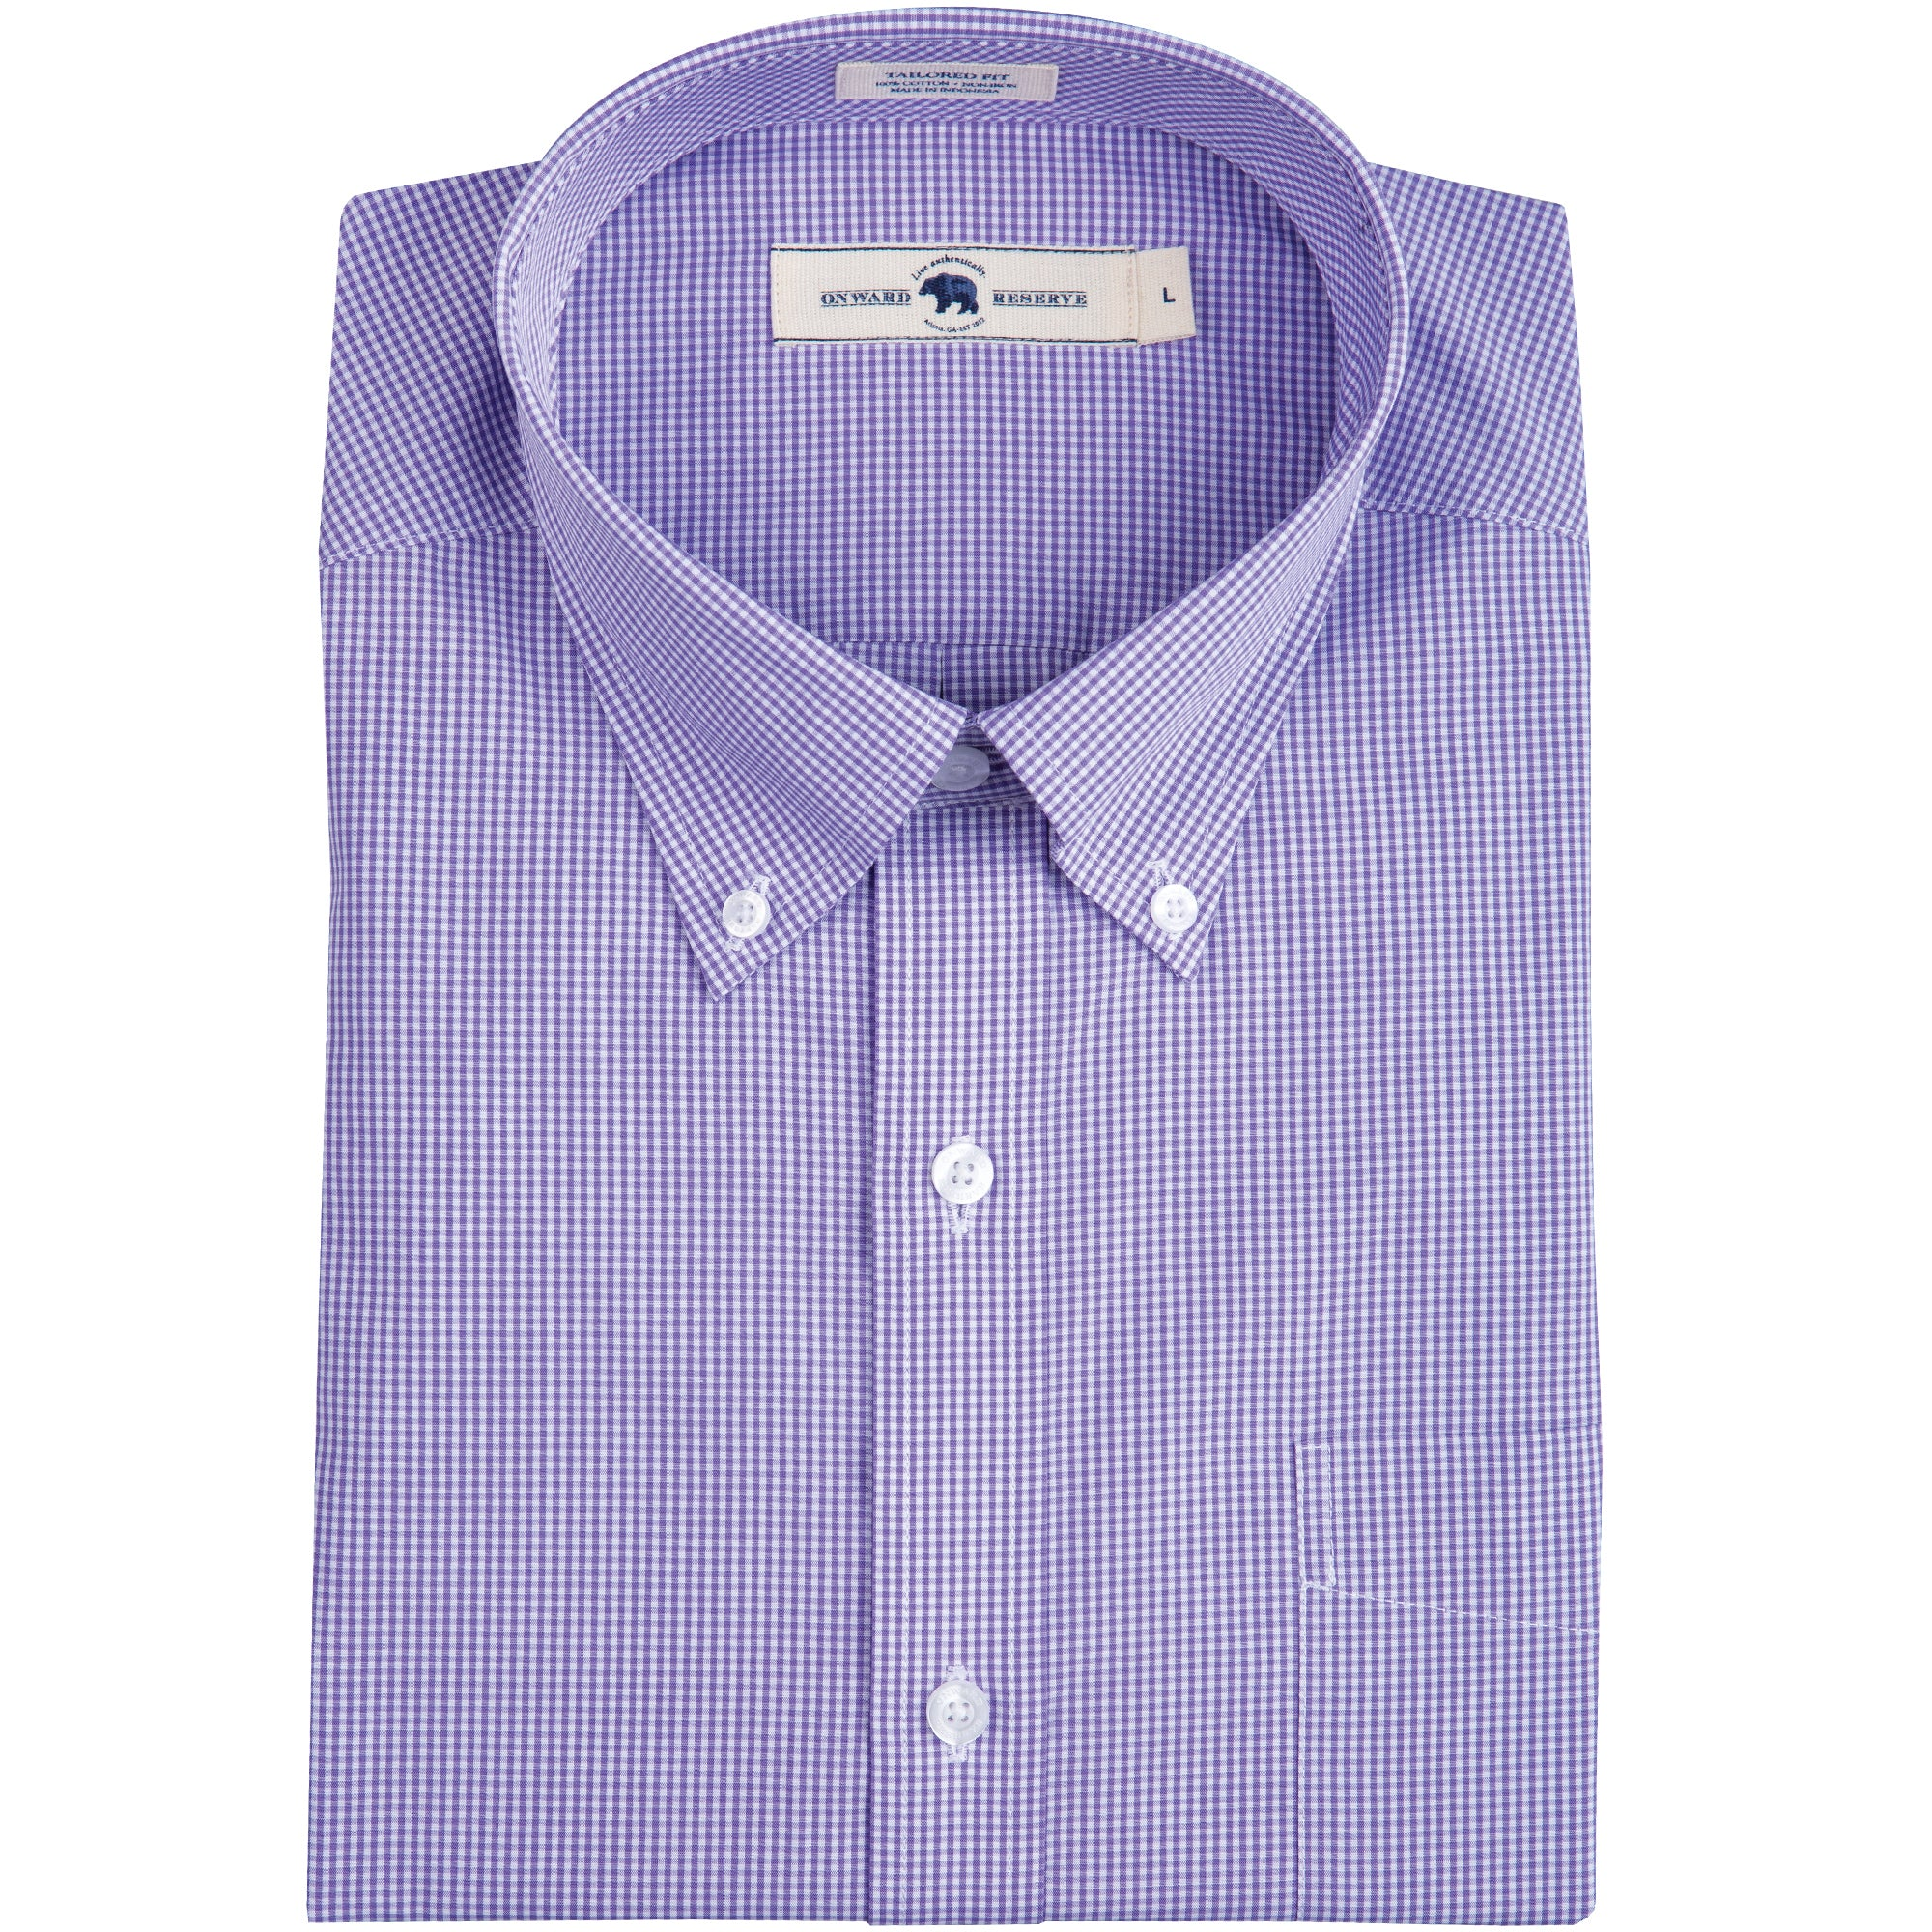 Jones Tailored Fit Button Down